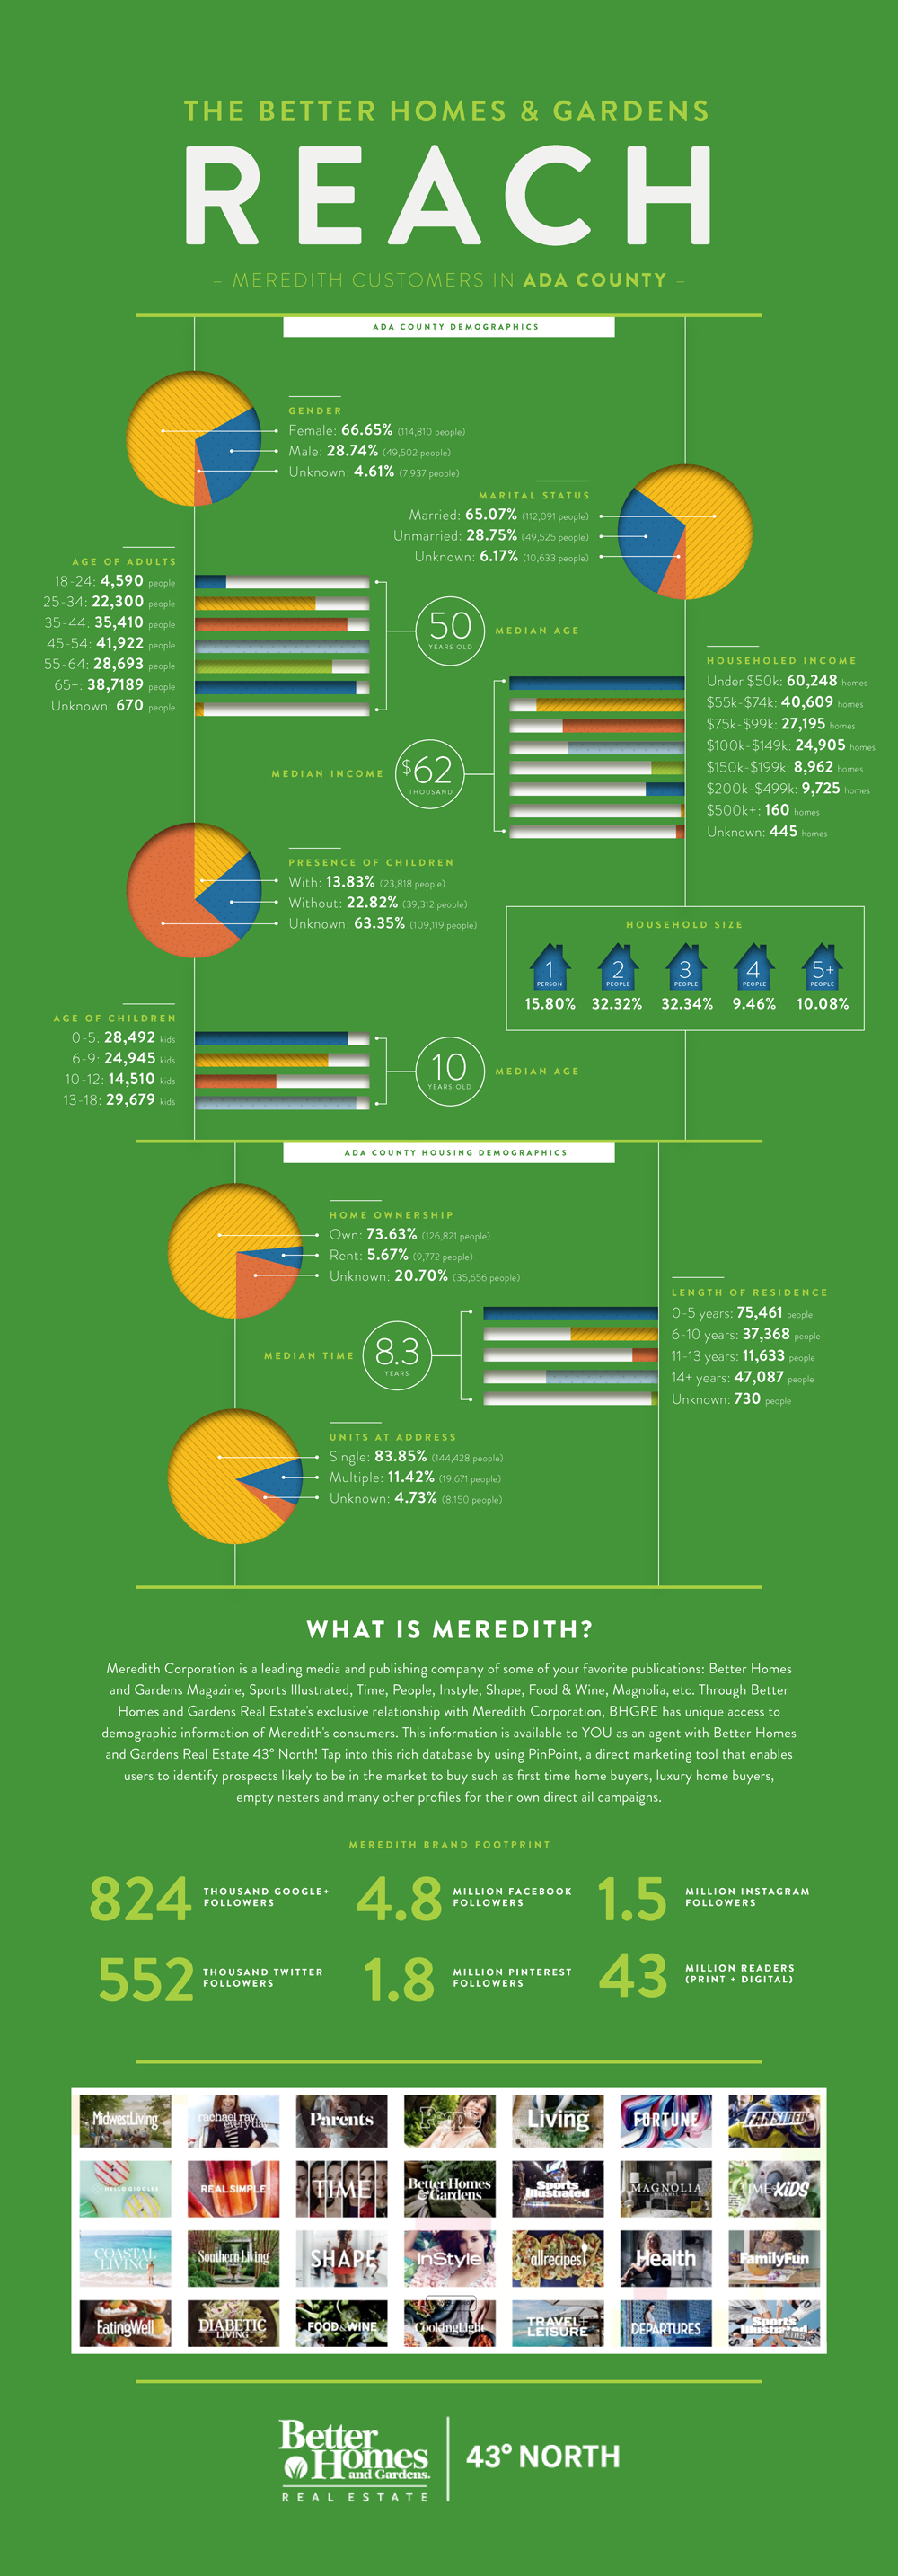 Pinpoint_Infographic_AdaCounty190621-01.jpg